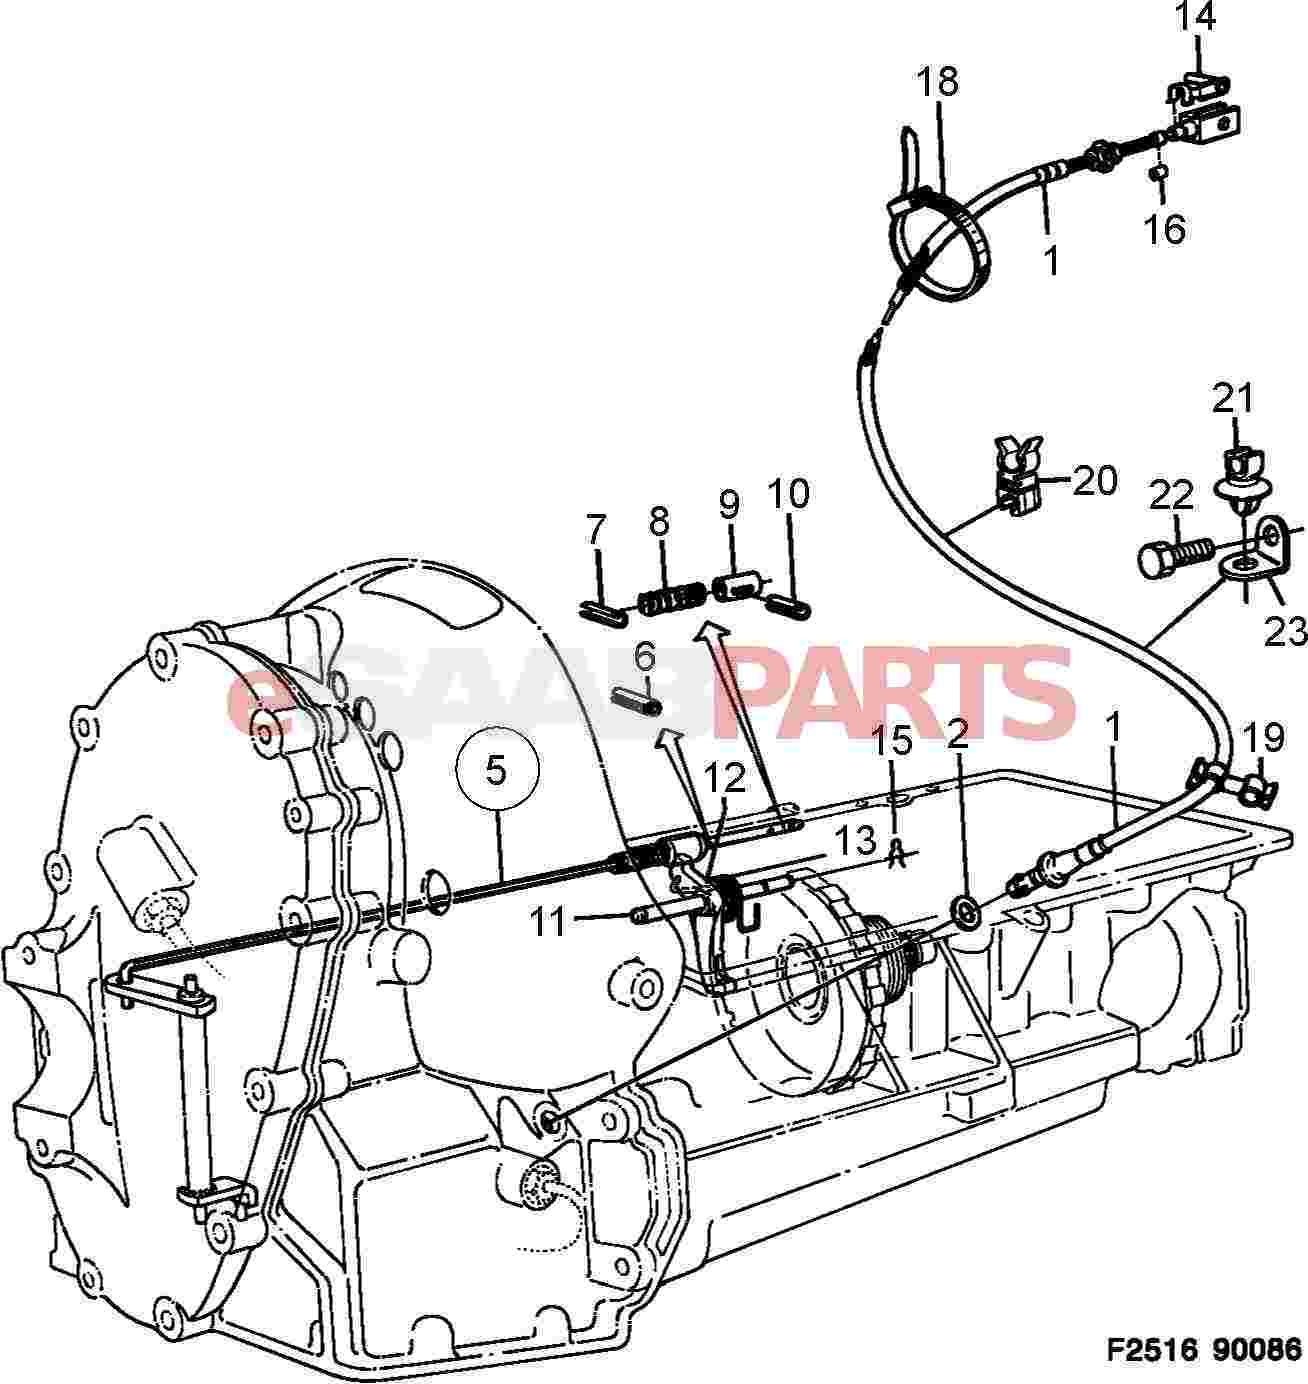 1992 Saab 900 Wiring Diagram • Wiring Diagram For Free